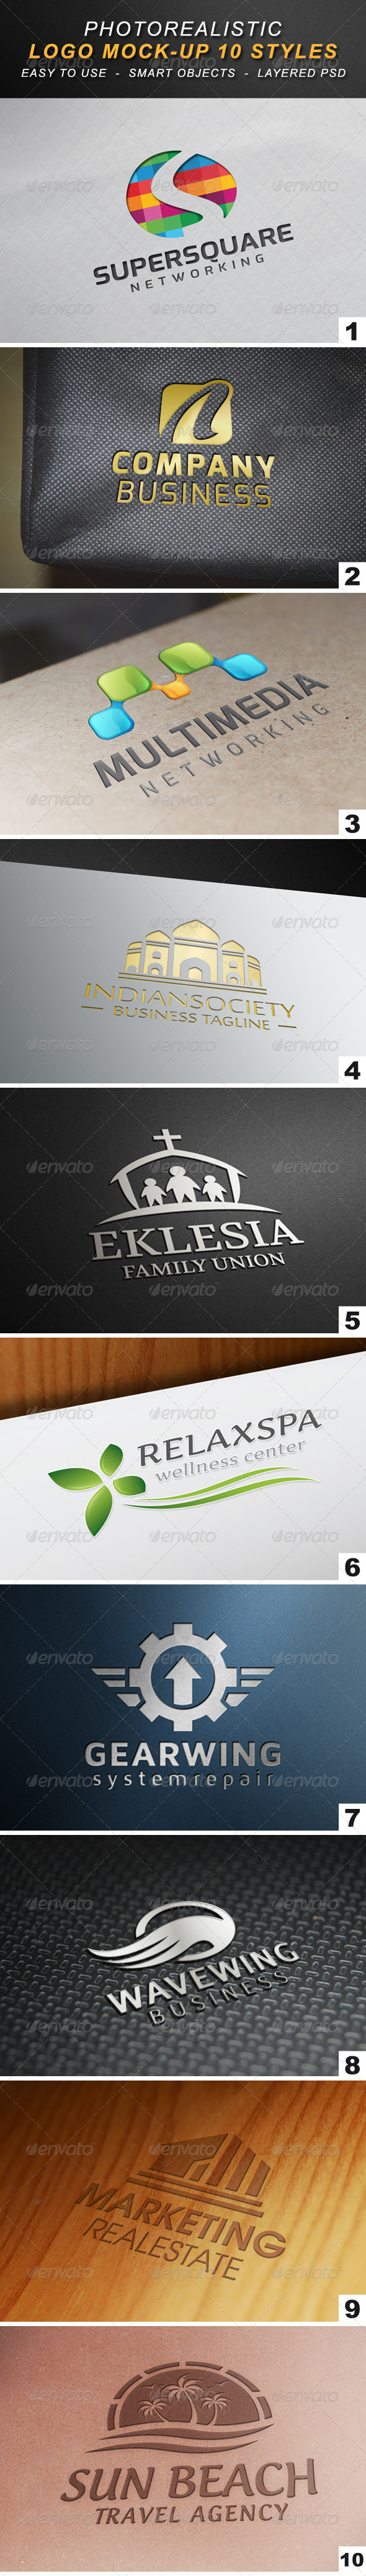 Photorealistic Logo Mock-Up 10 Styles